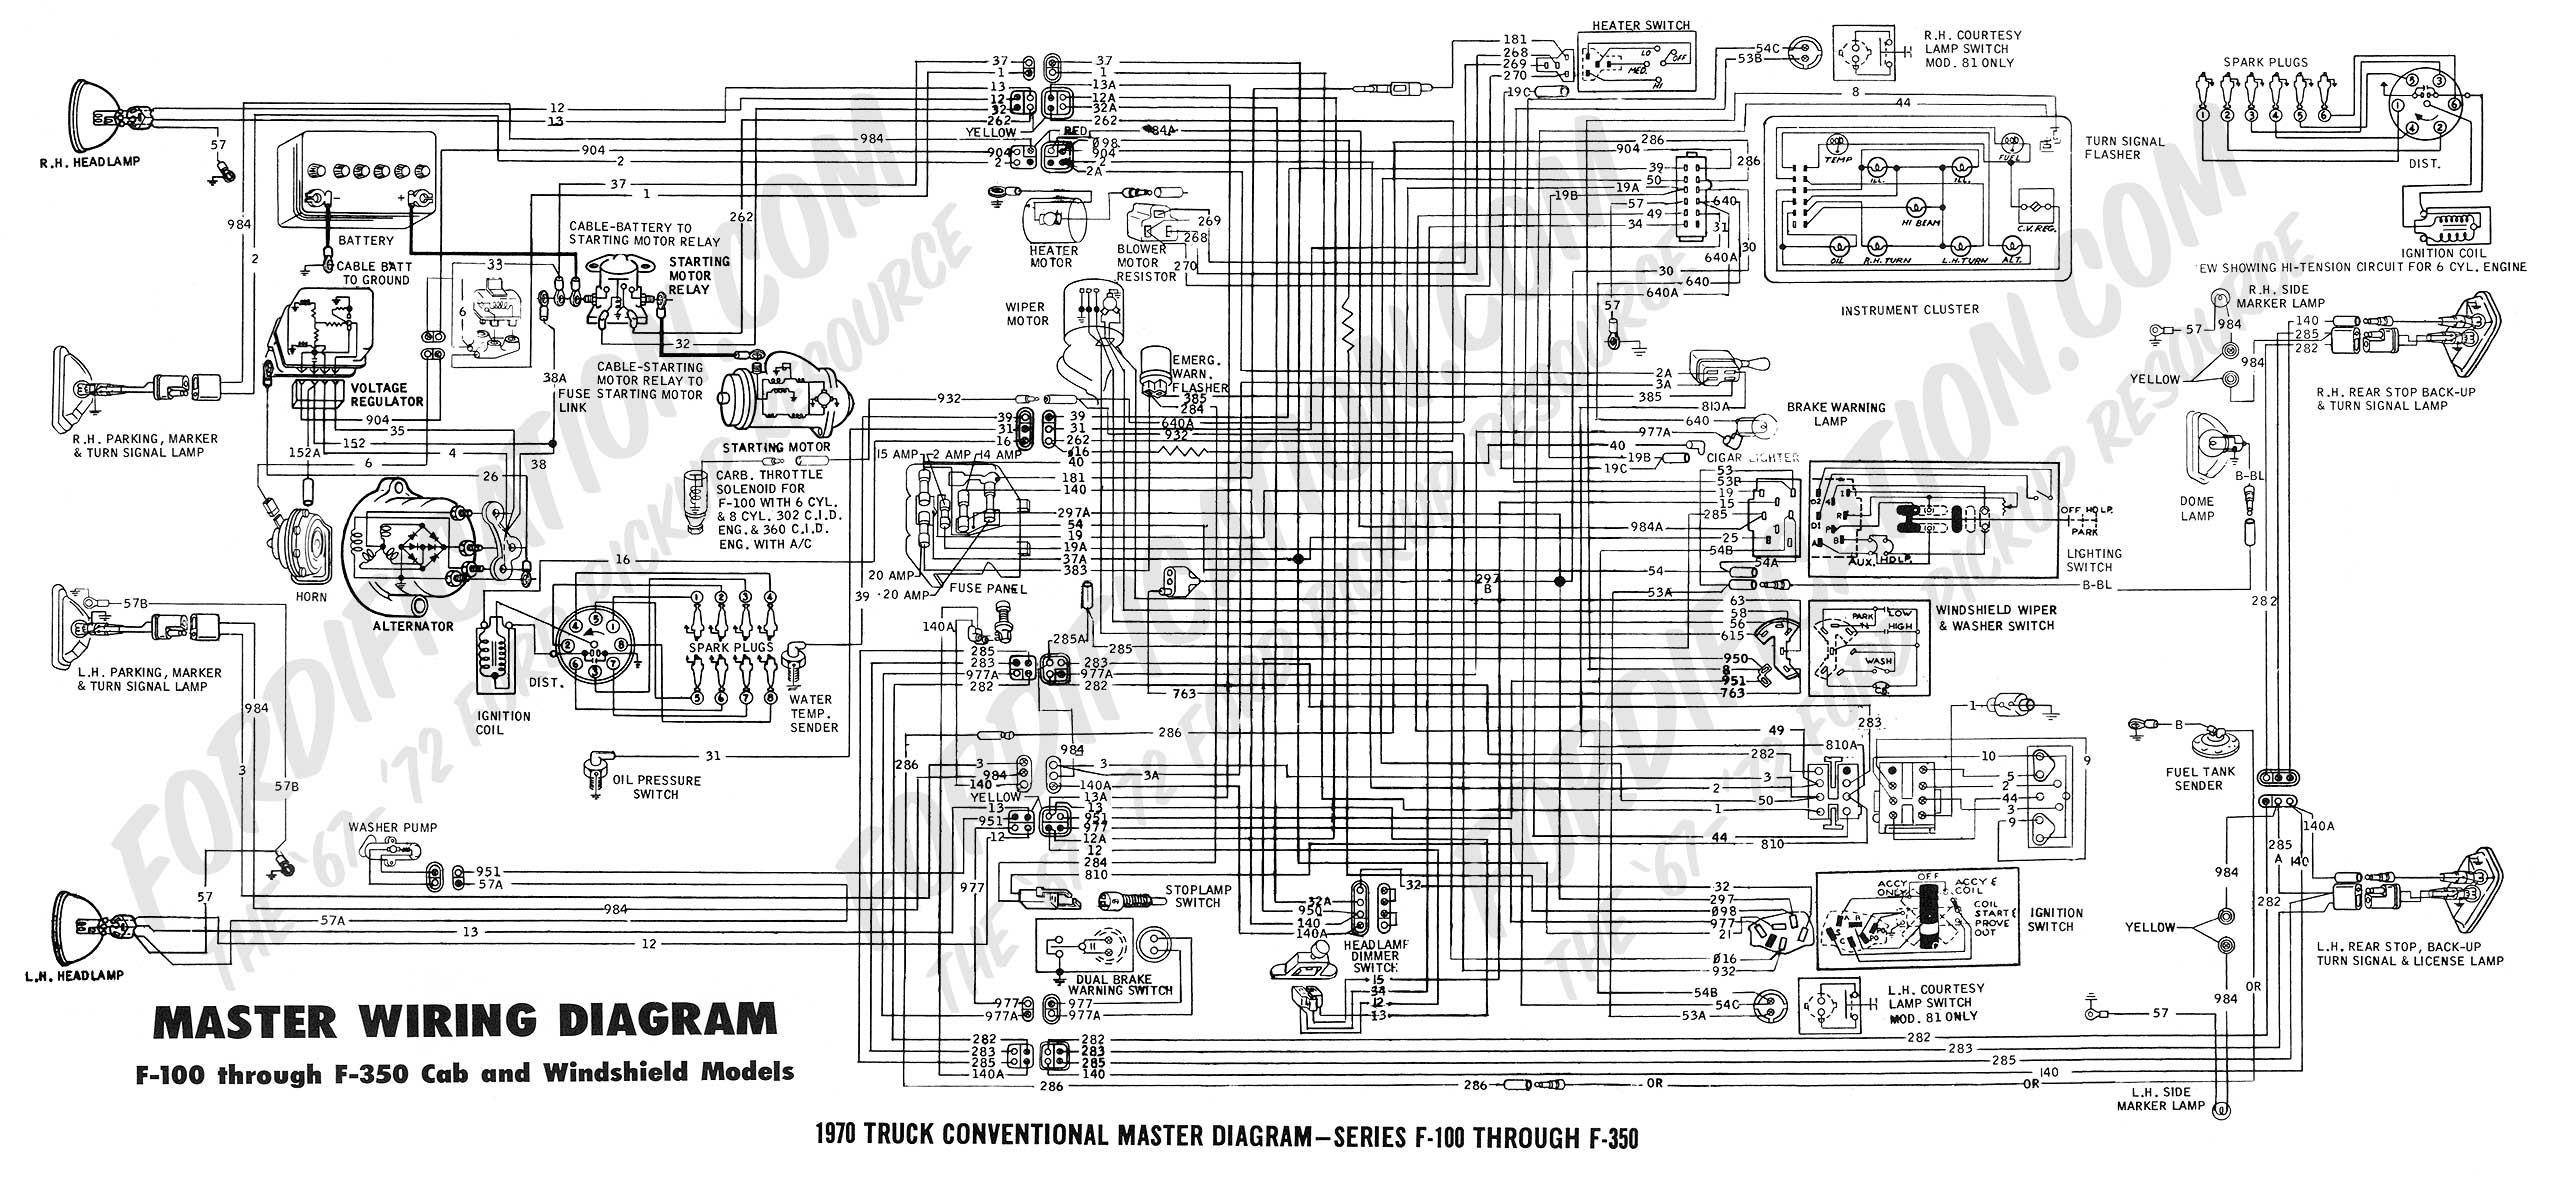 70 ford ignition wiring diagram wiring diagram 201970 ford ignition wiring control cables \\u0026 wiring diagram